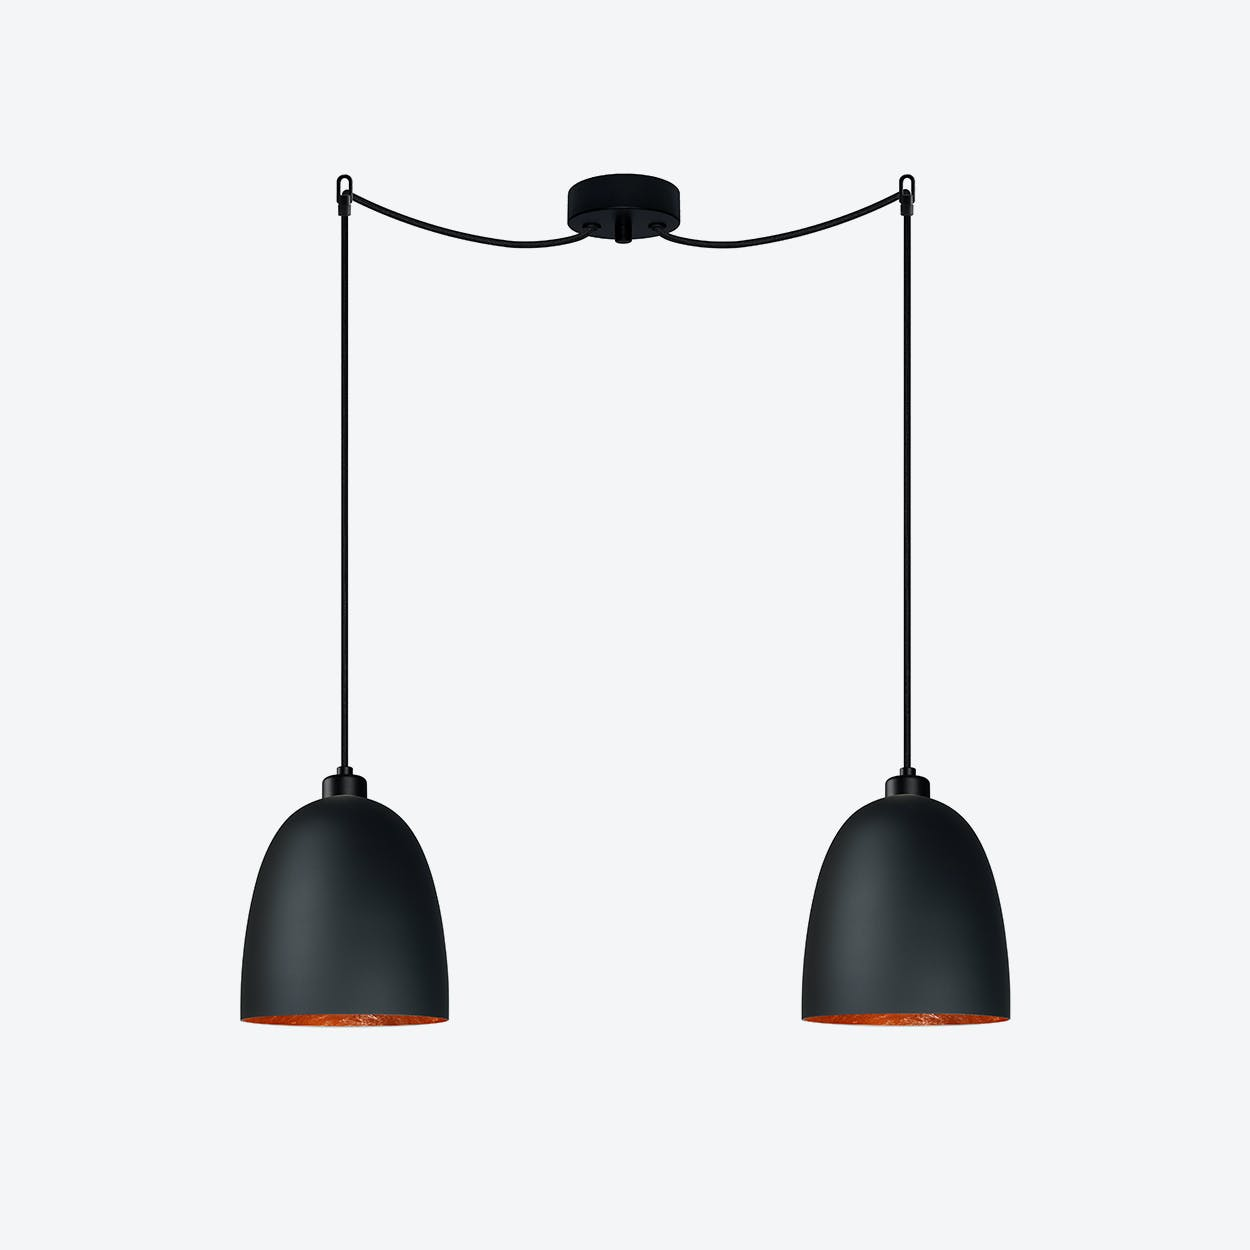 AWA Double Pendant Light in Matte Black with Copper Leaf